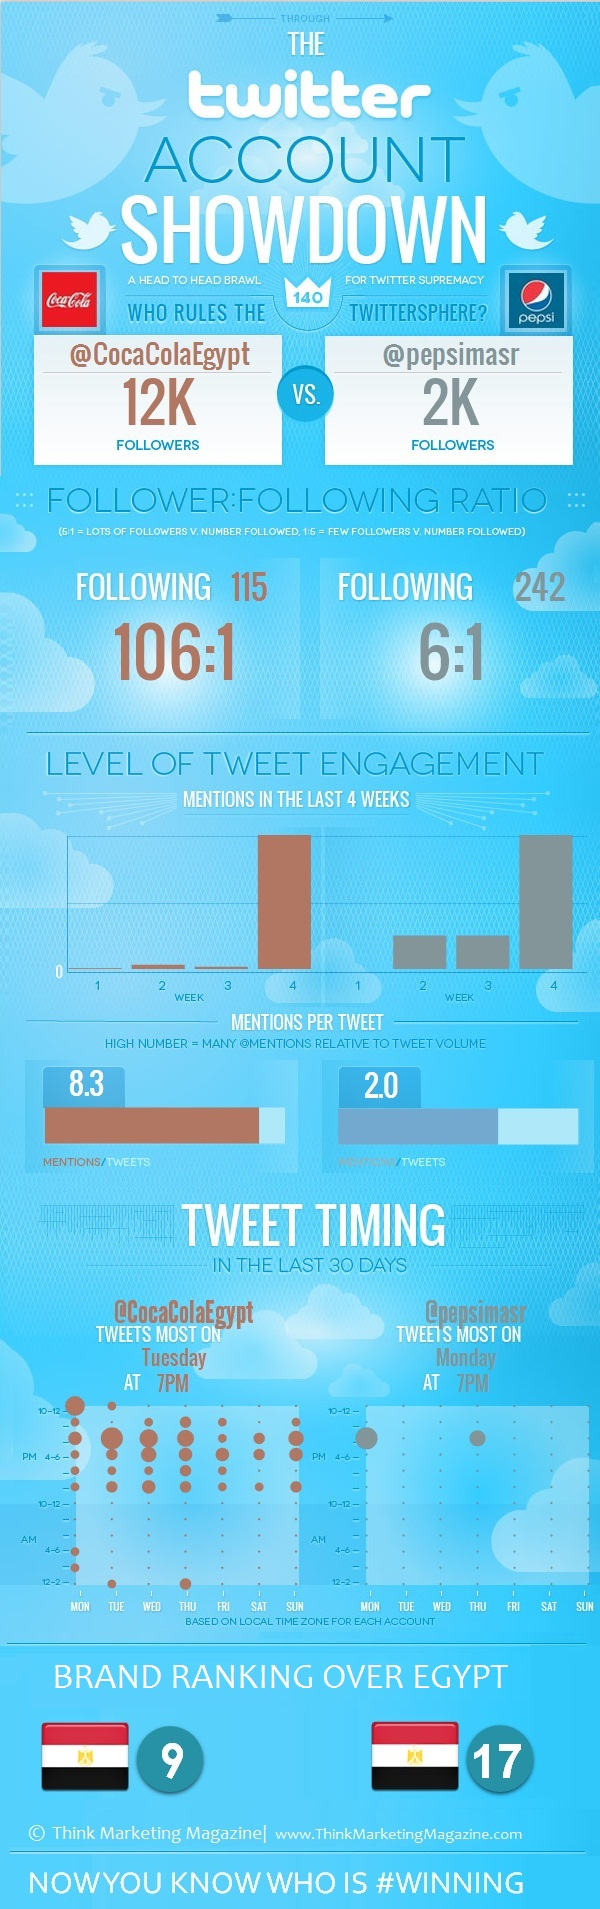 COCA COLA VS  PEPSI - The digital seen on Twitter [Infographic]